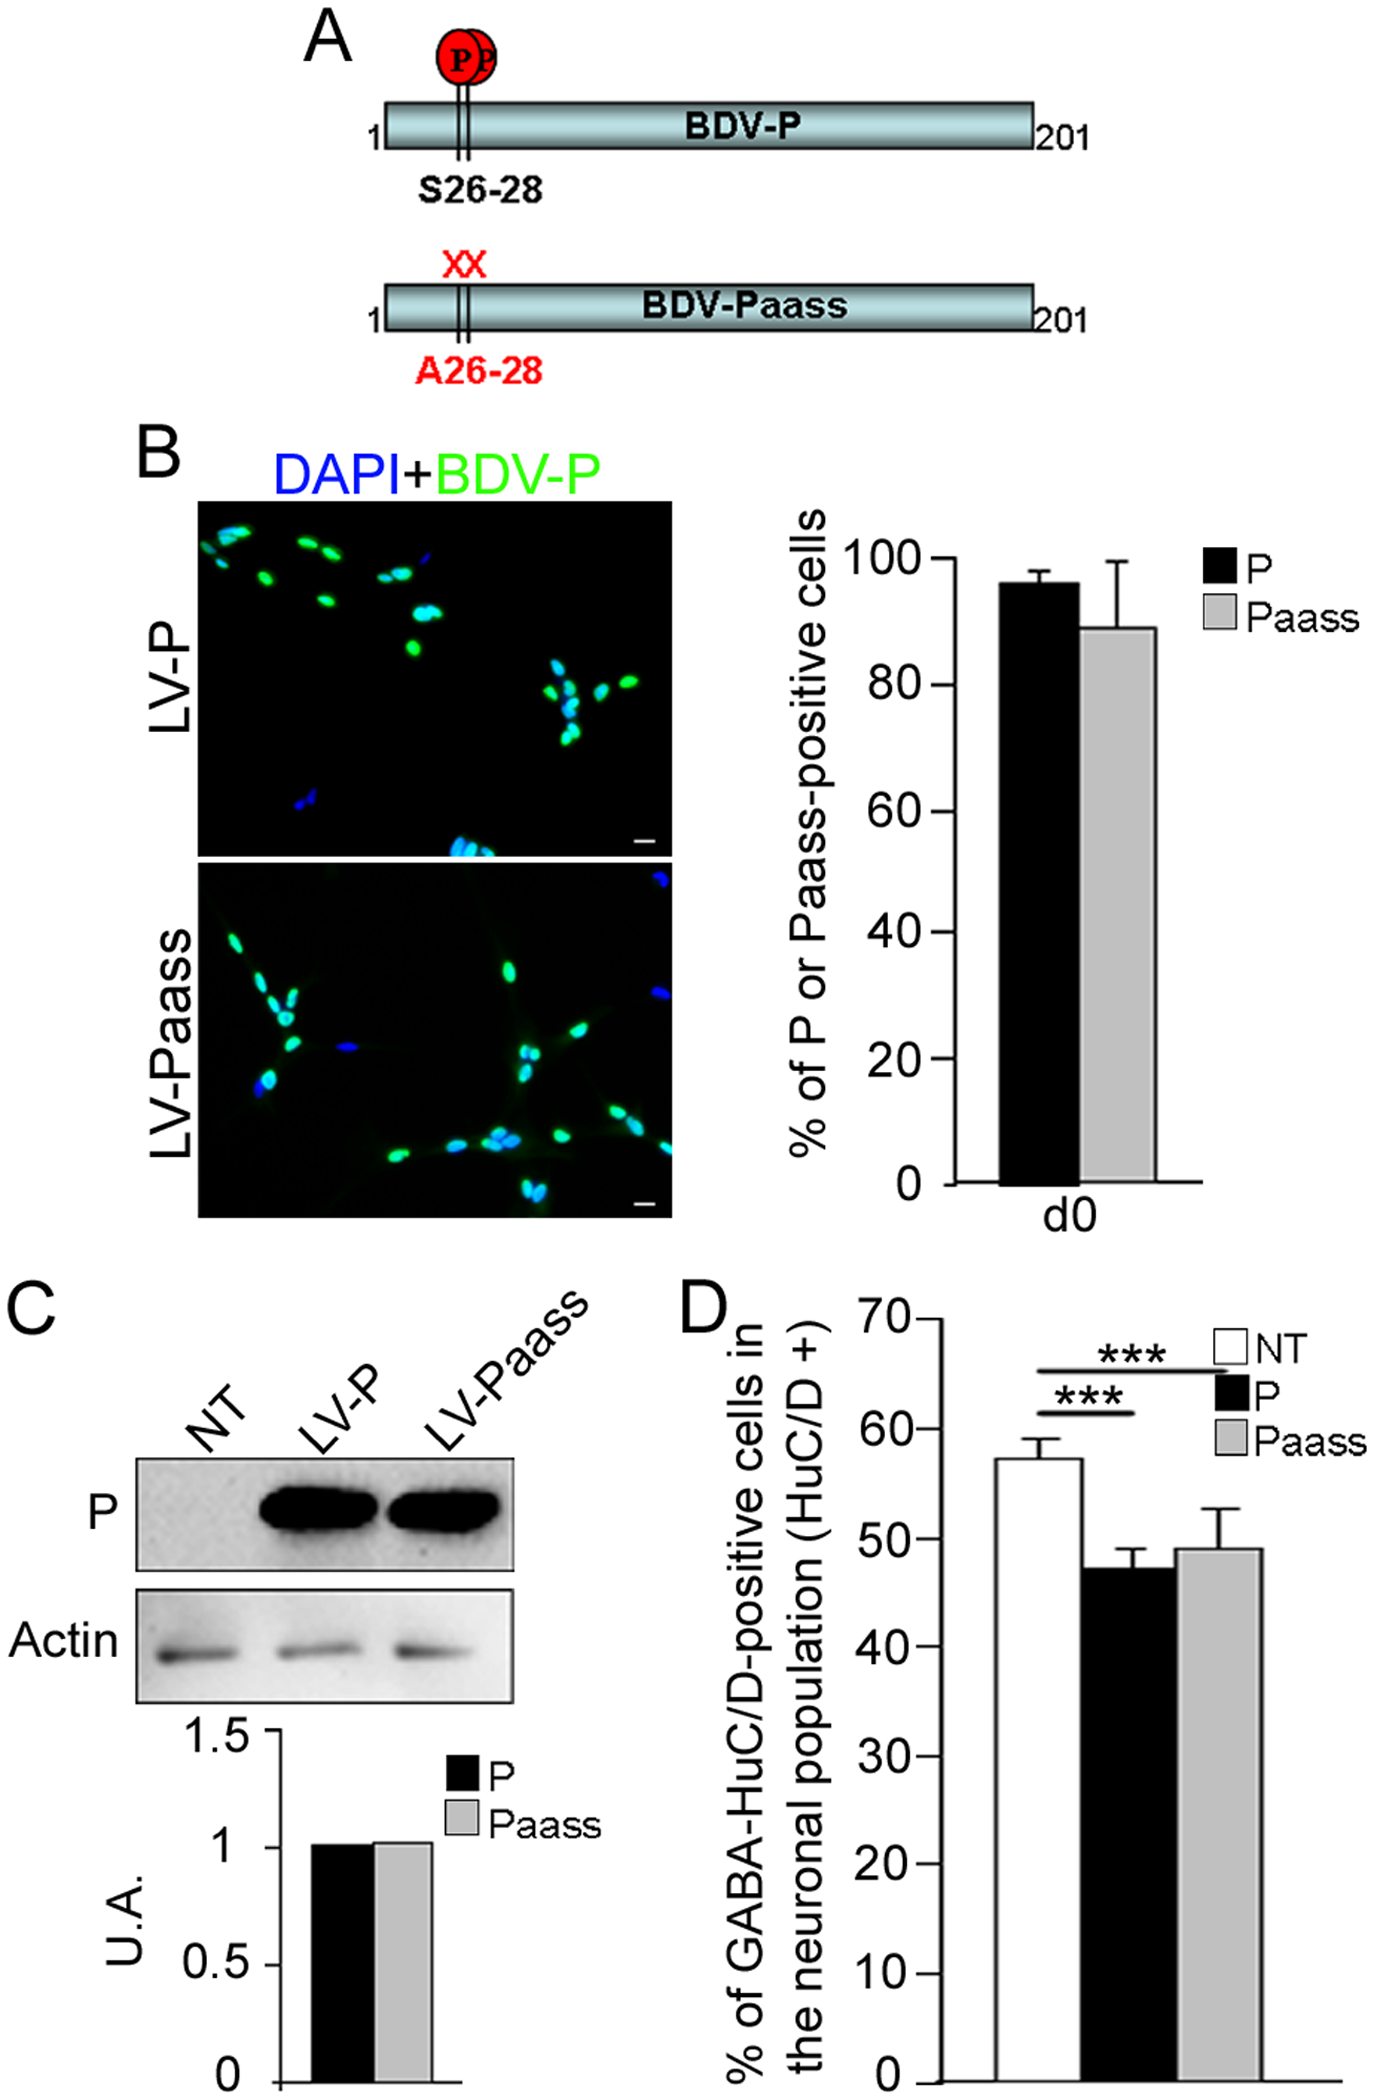 The S26/28 phosphorylation site is not necessary for <i>bdv-p</i>-induced reduction in GABAergic neurogenesis.